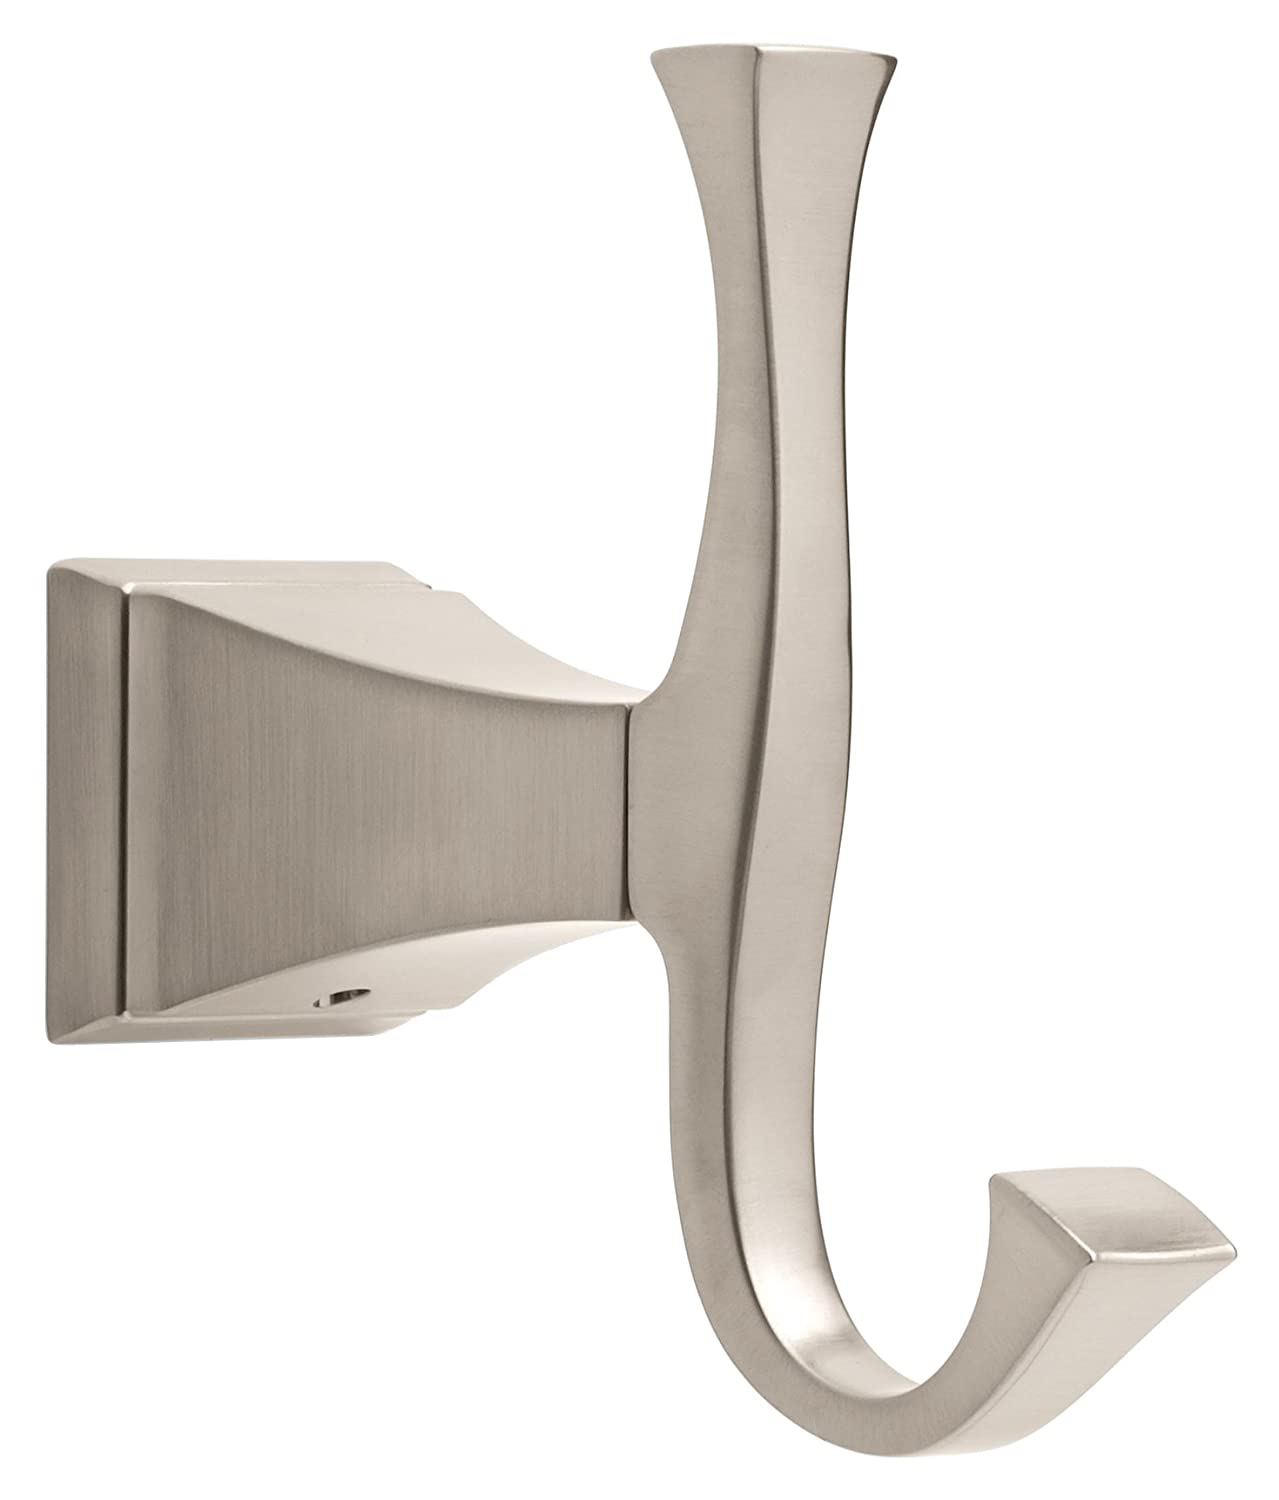 Delta Faucet 128890 Dryden Double Robe Hook, Brilliance Stainless Steel